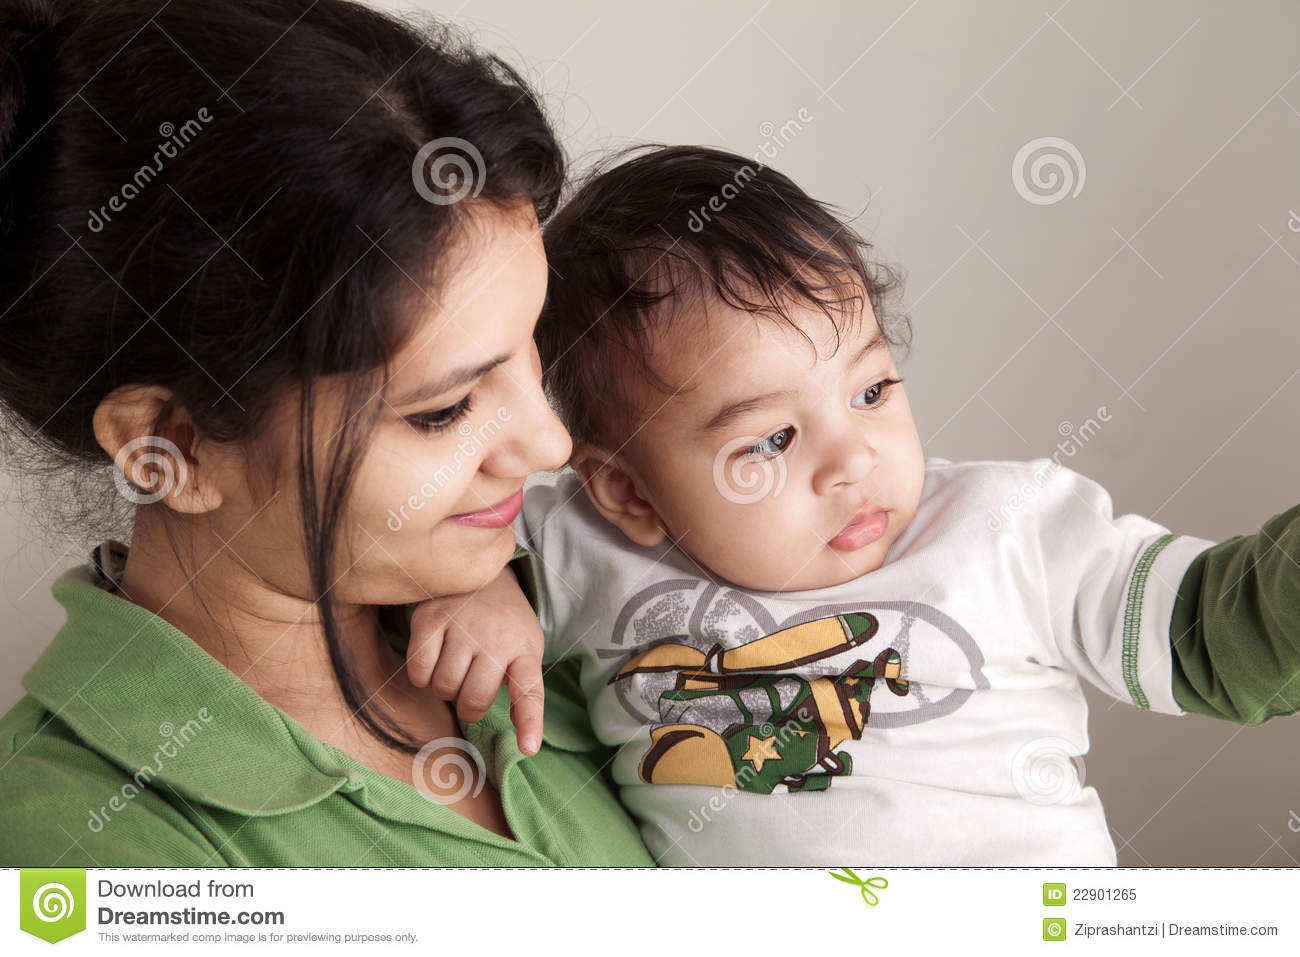 Indian Mother And Baby Smiling Stock Image - Image of female